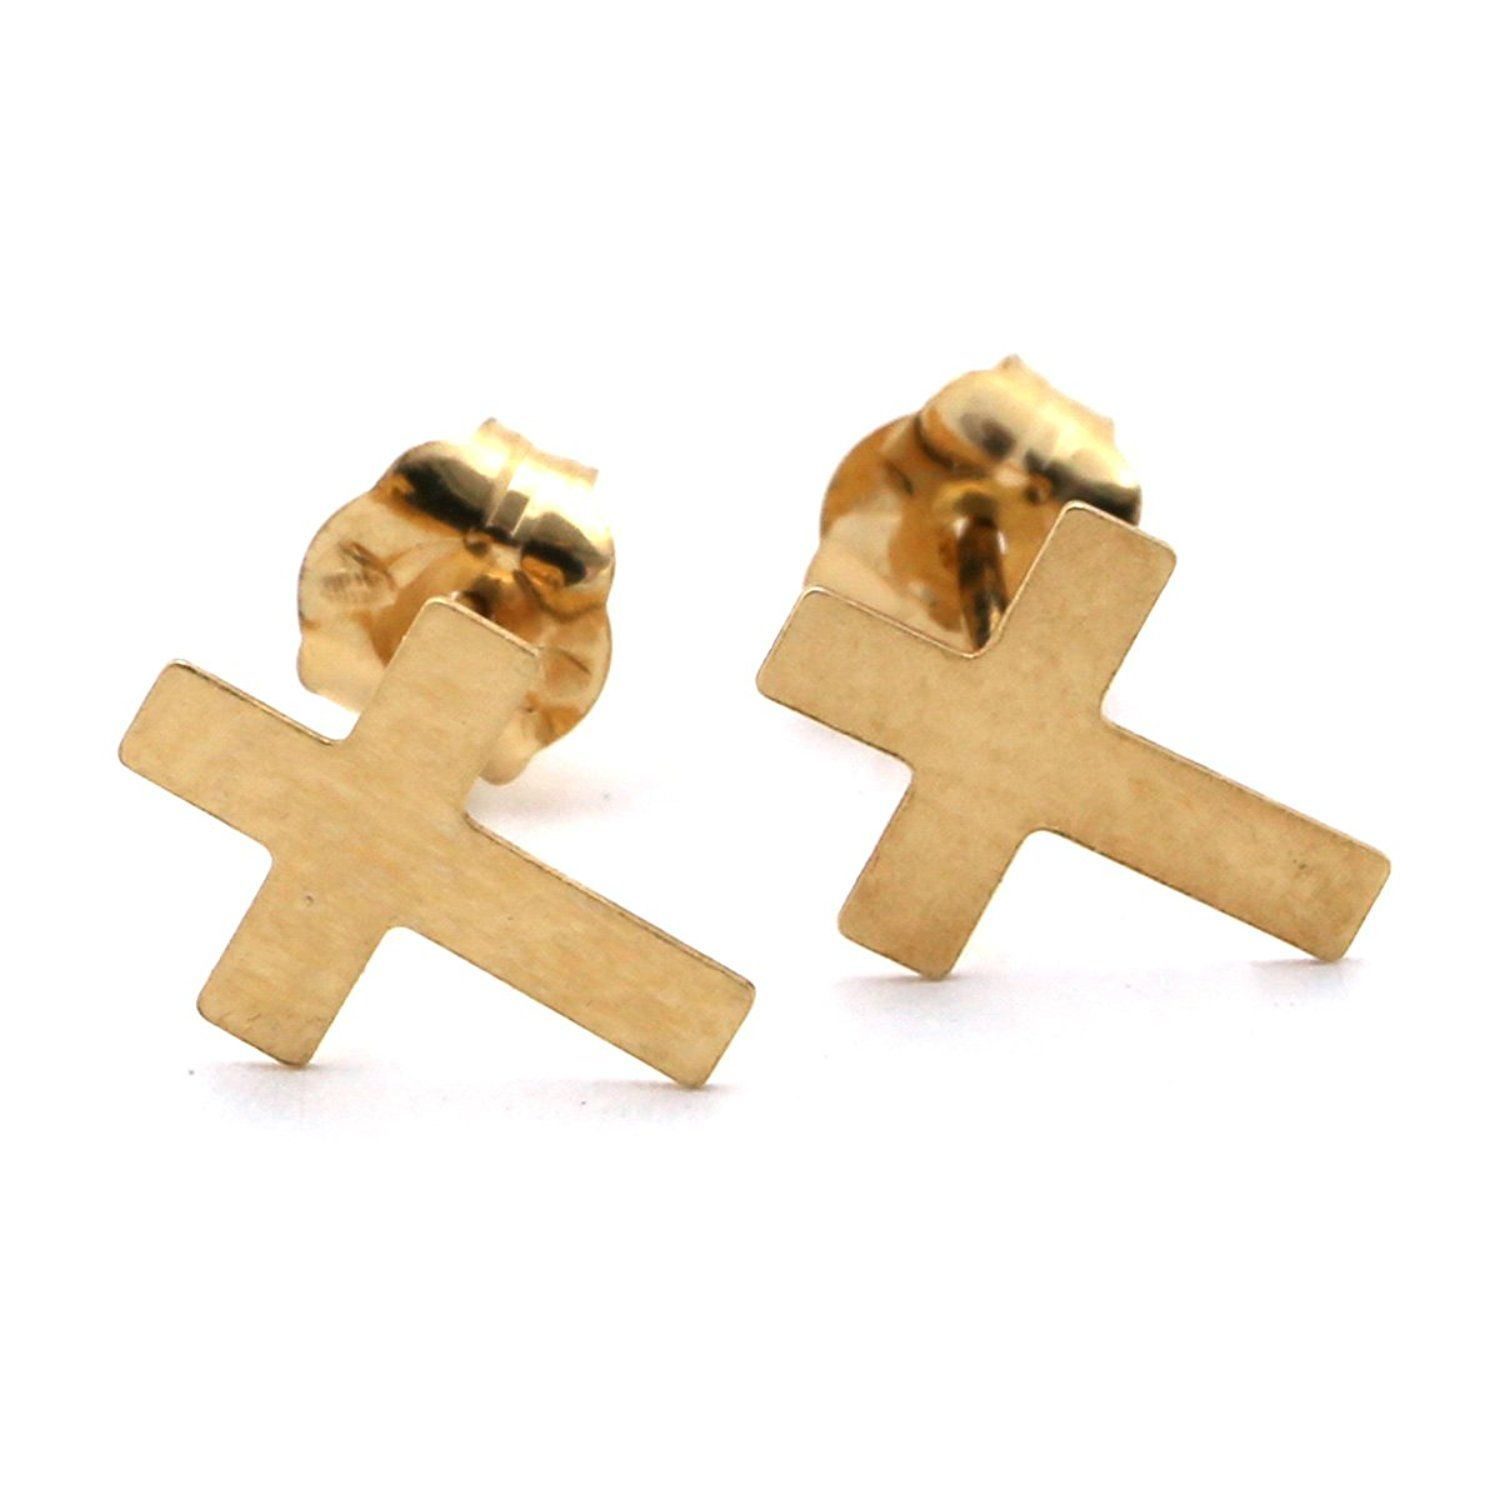 new the treasured small cross accessory stud arrivals studs collections rhodium xo earrings